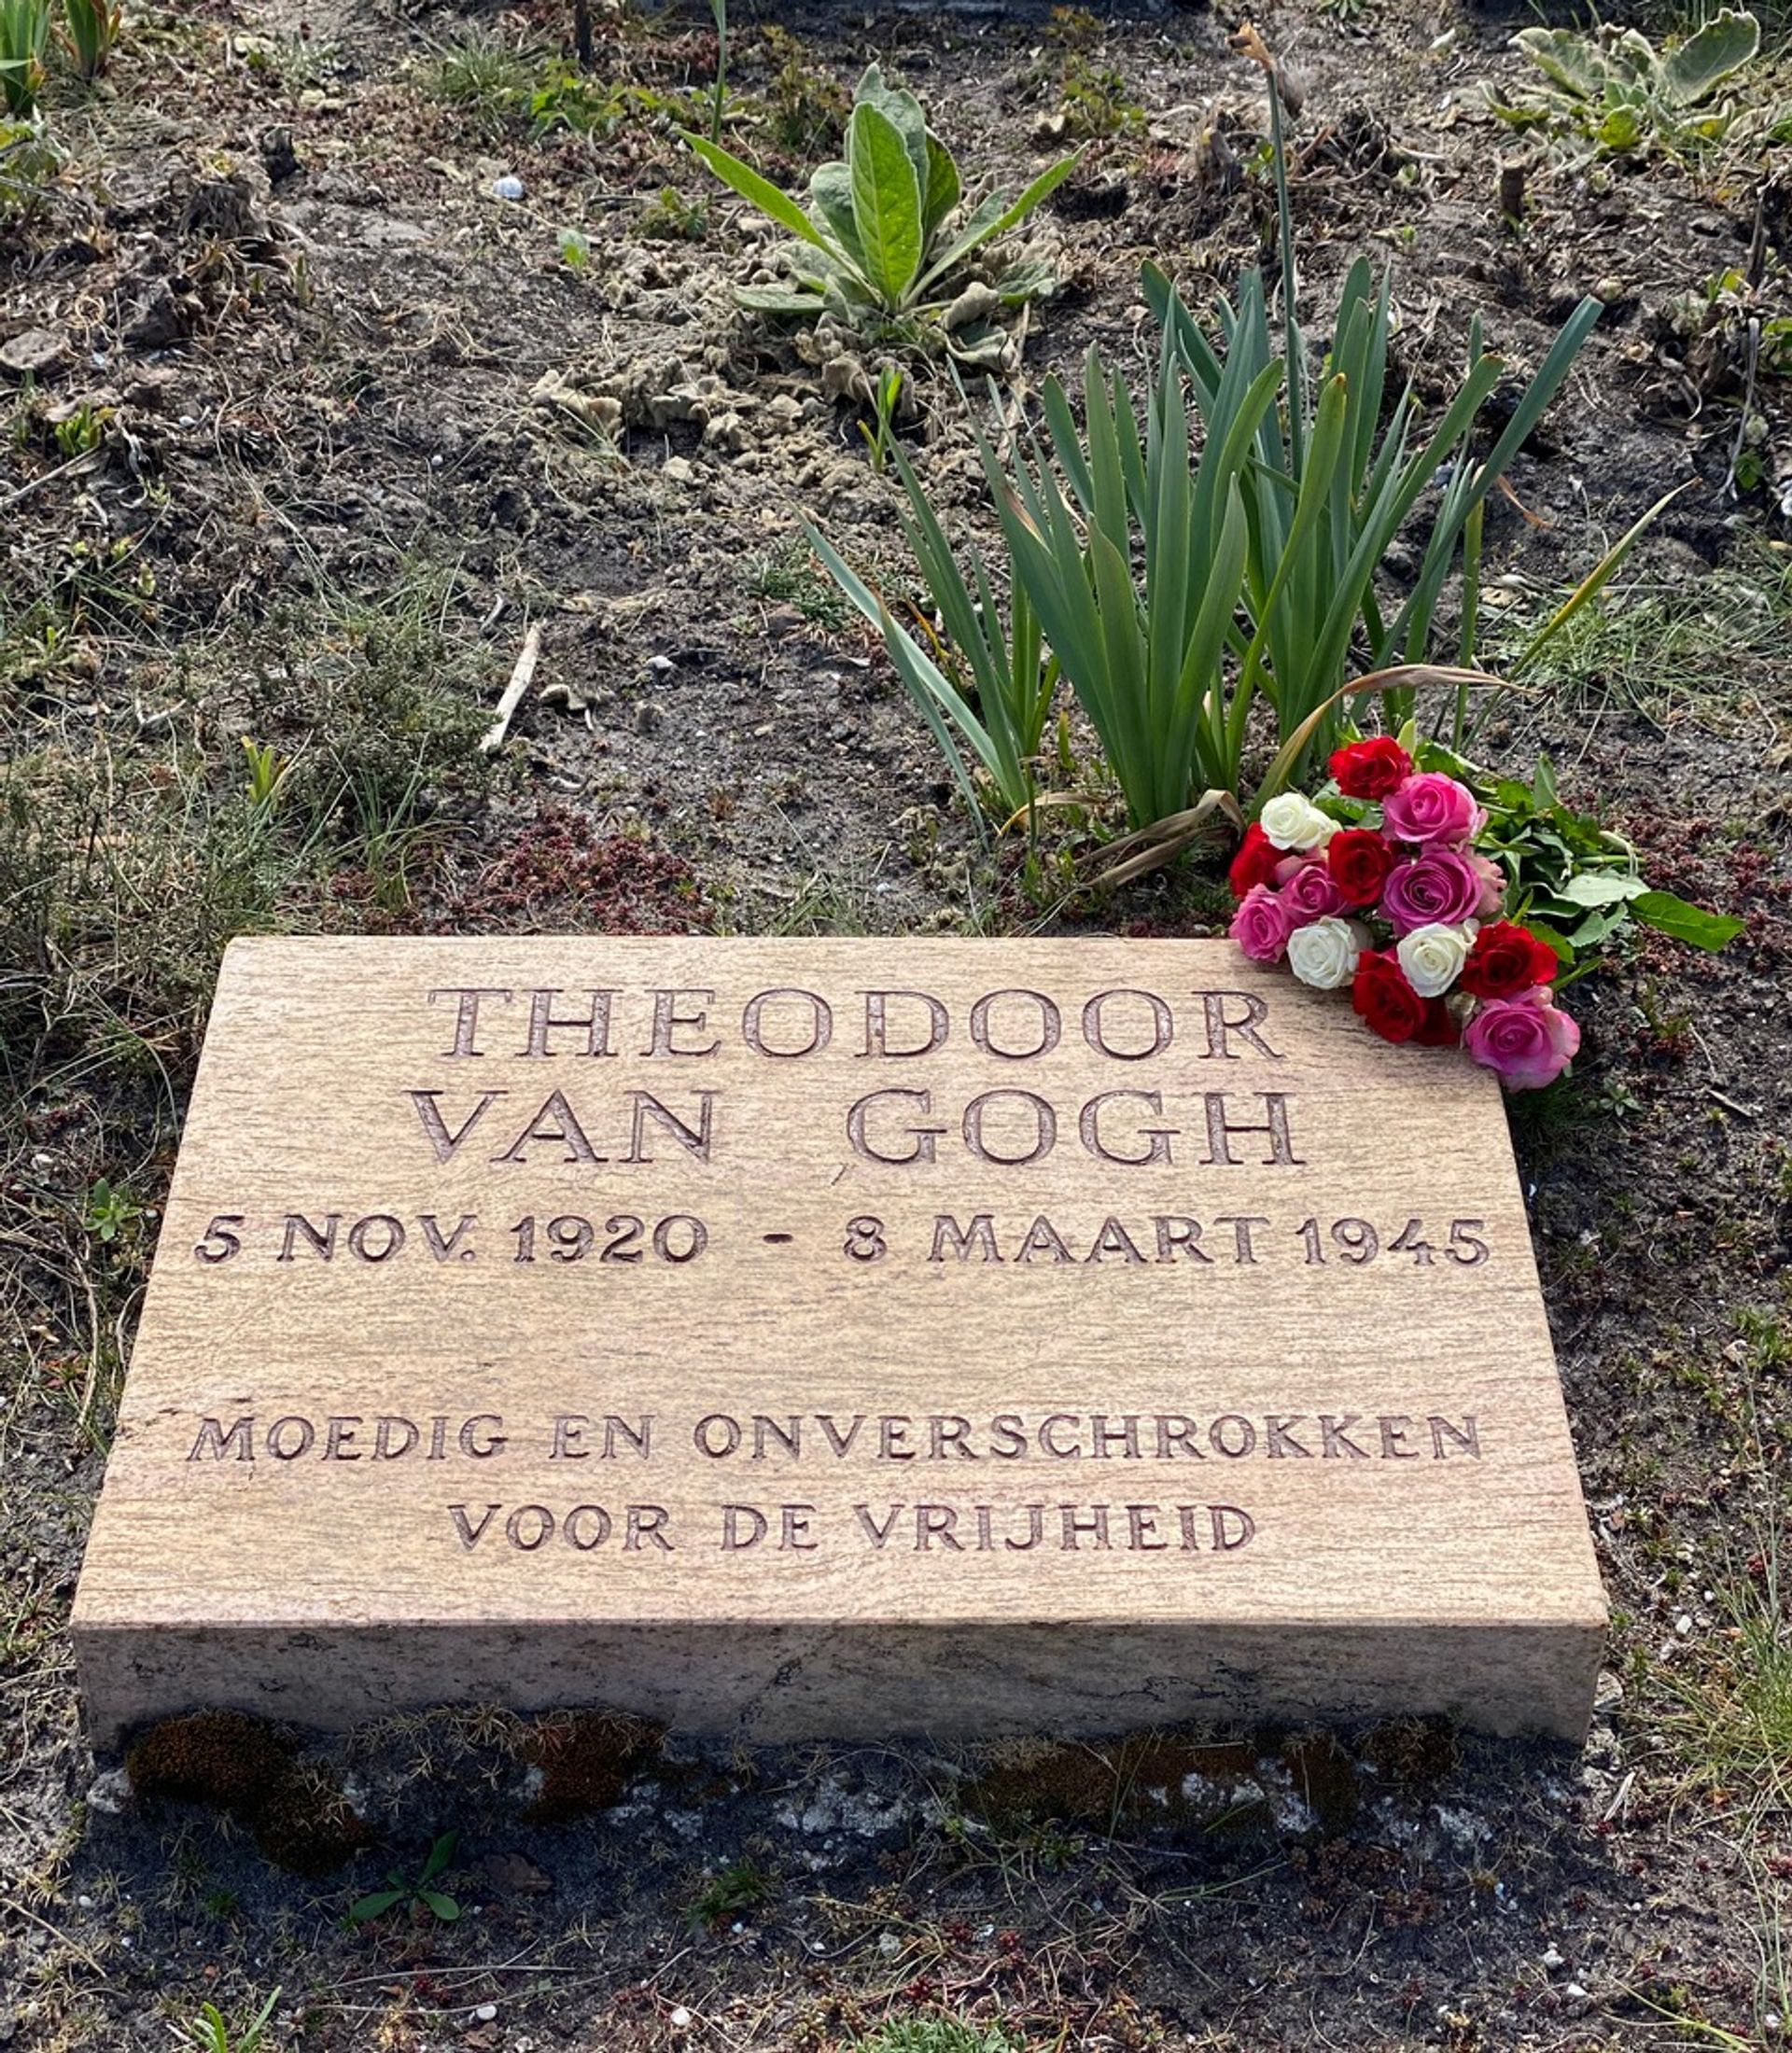 The grave of Theodoor van Gogh (1920-45) with roses, Field of Honour Cemetery, Overveen, Netherlands Courtesy of Willem van Gogh, Amsterdam